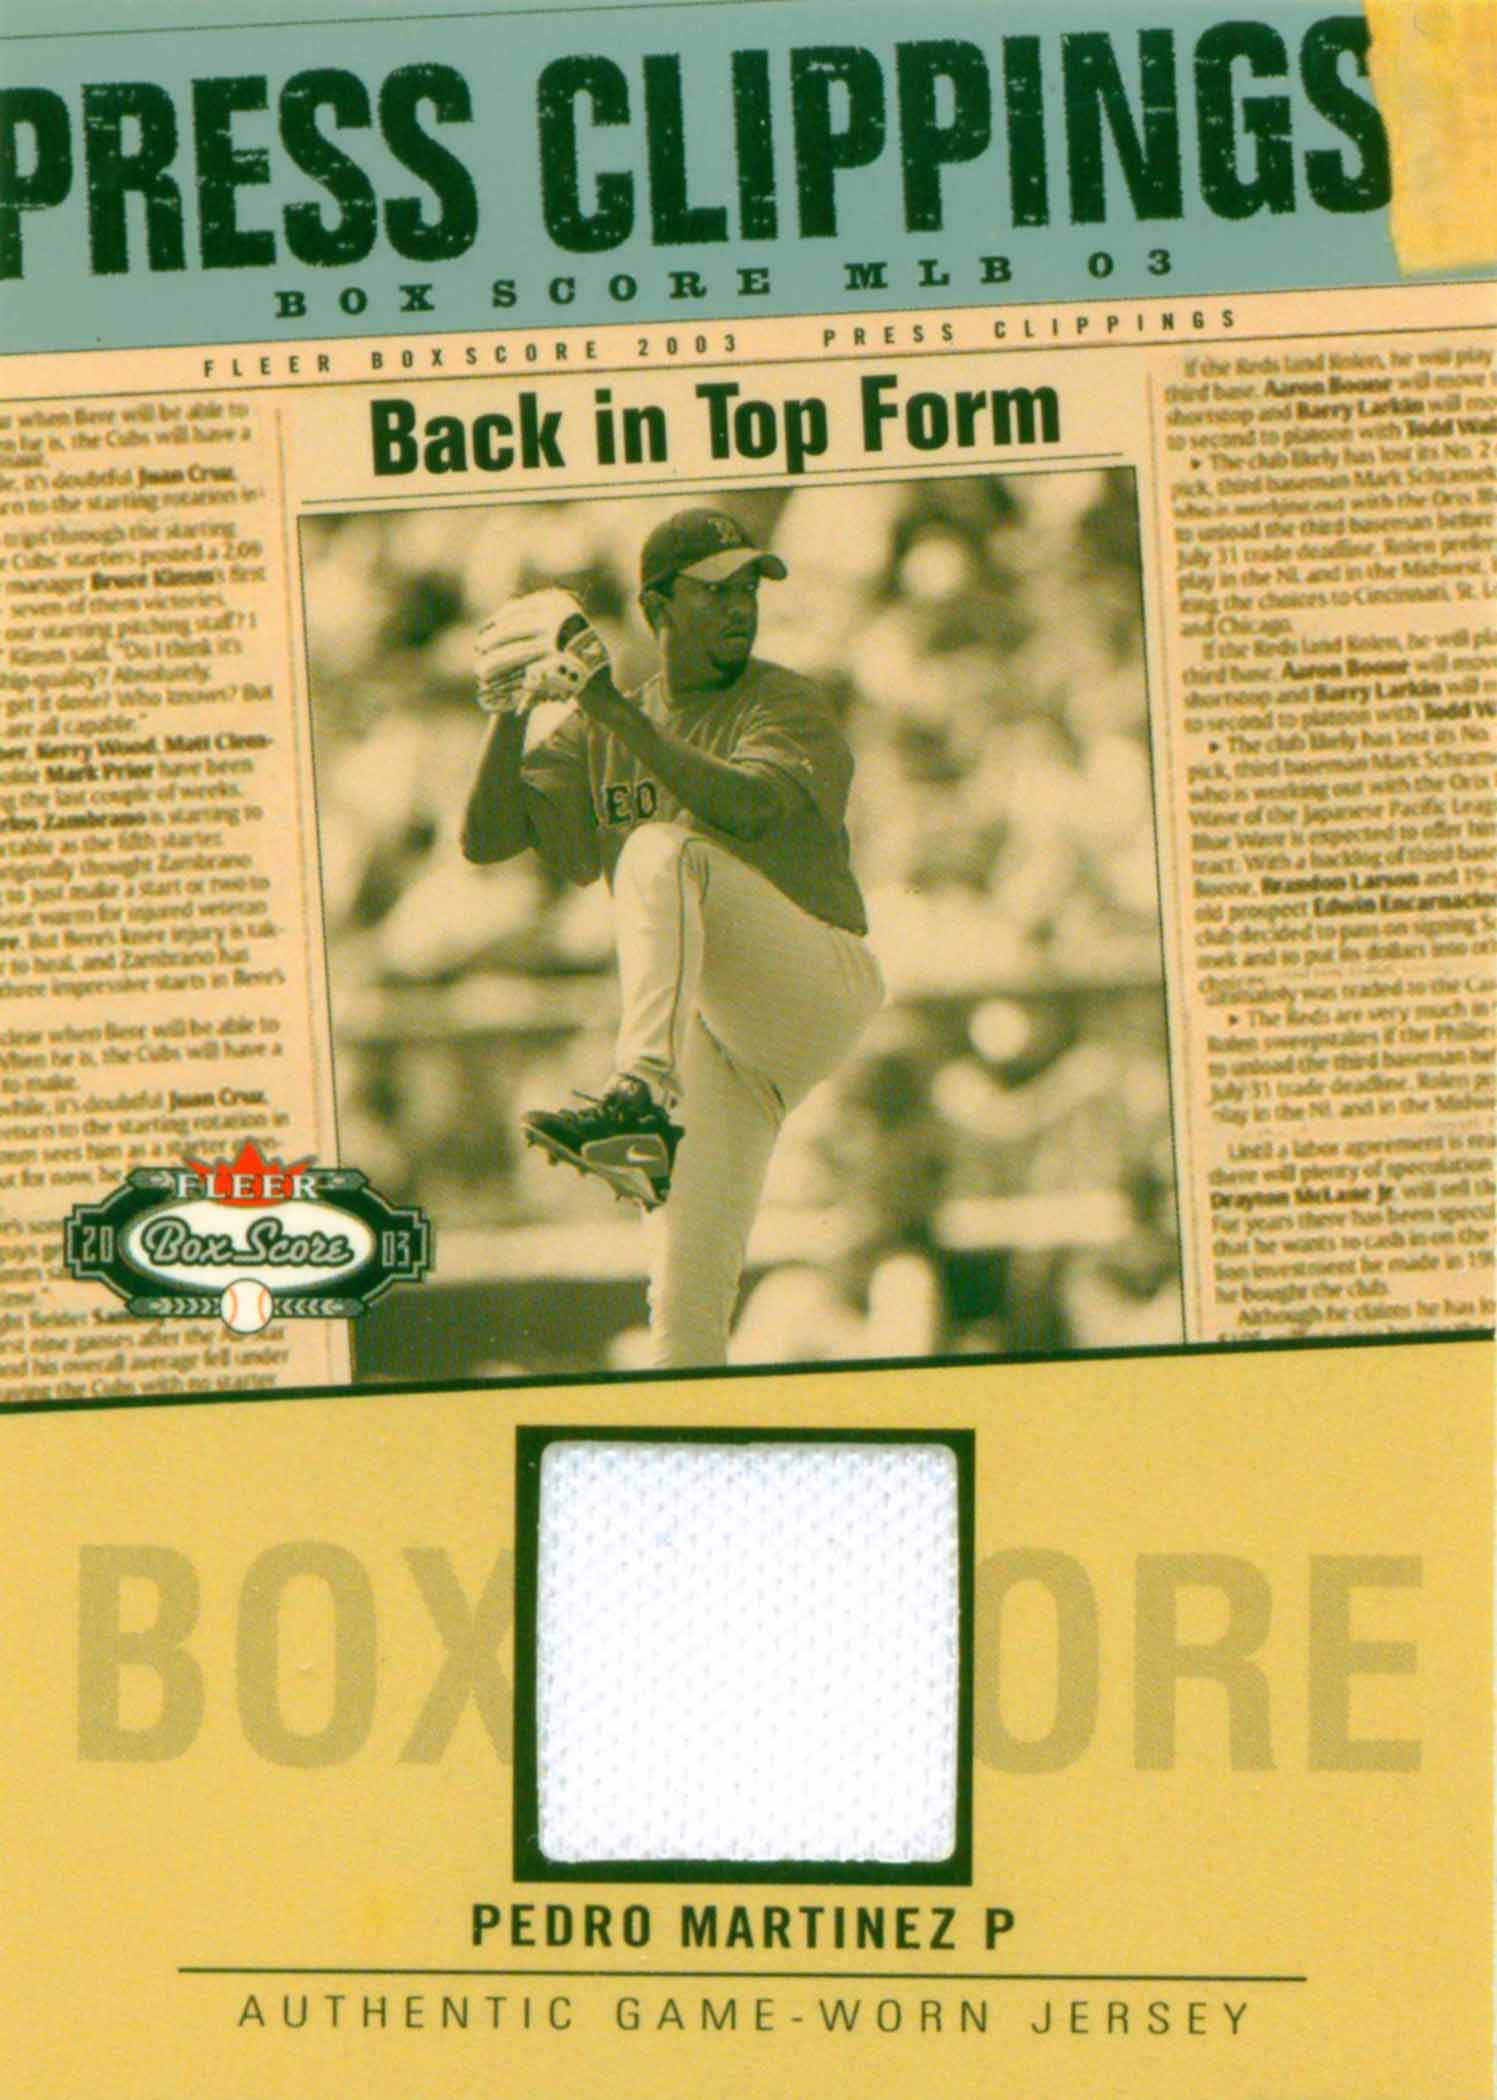 2003 Fleer Box Score Press Clippings Game Jersey